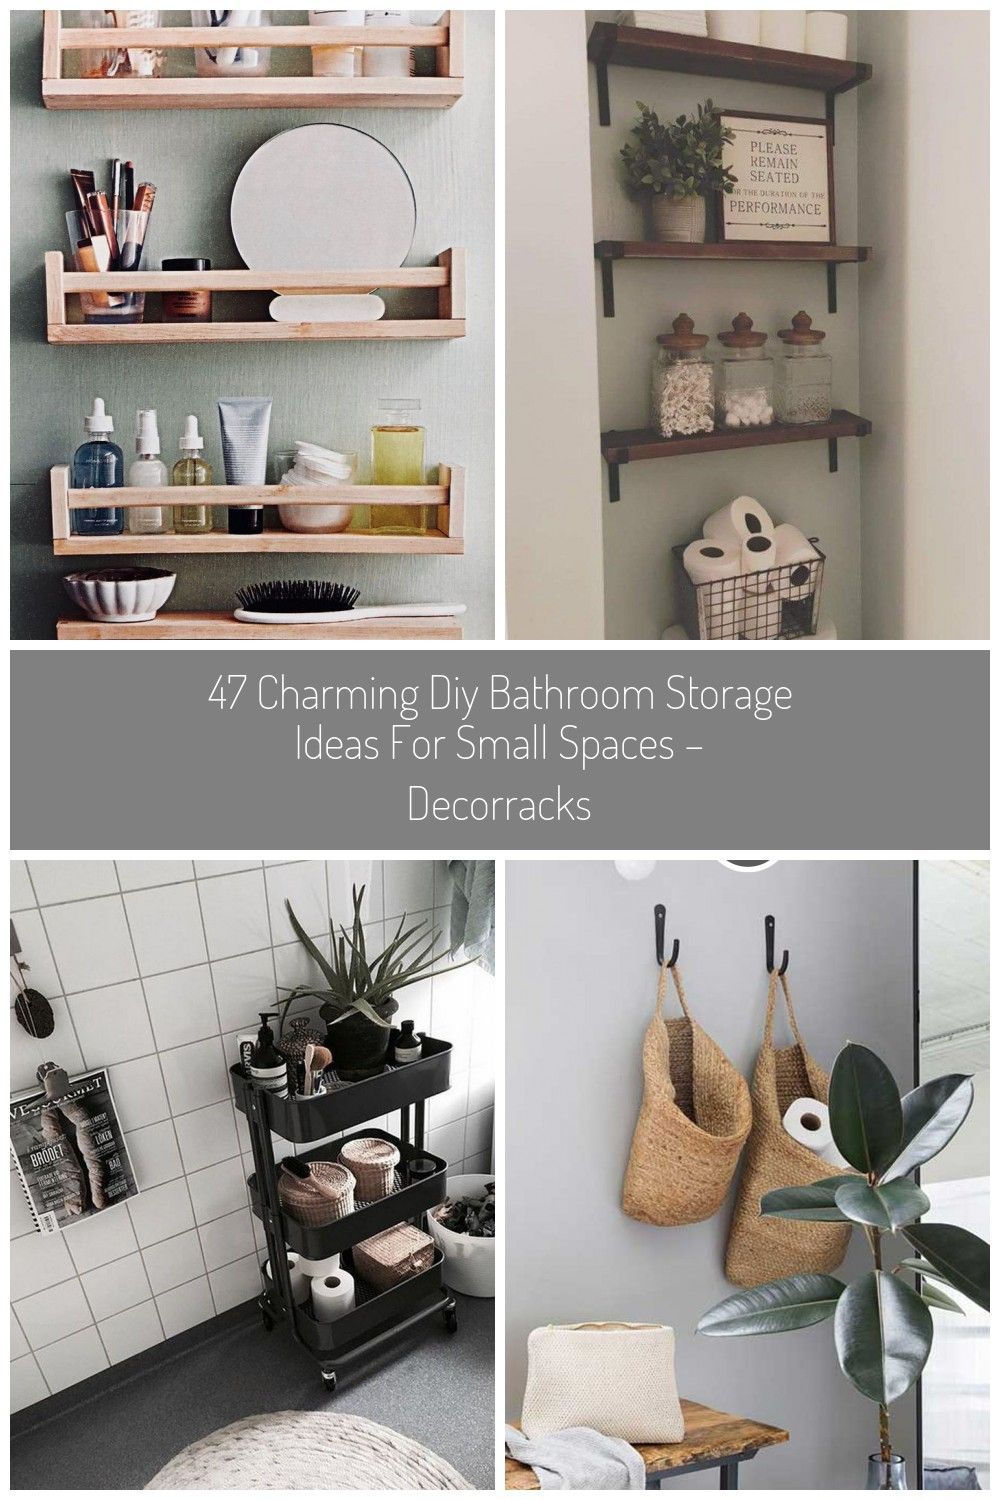 Badezimmer Aufbewahrung 47 Charming Diy Bathroom Storage Ideas For Small Spaces Decorracks Modernmimar Com Interior Diy Bathroom Traumhafte Badezimmer Und Badezimmer